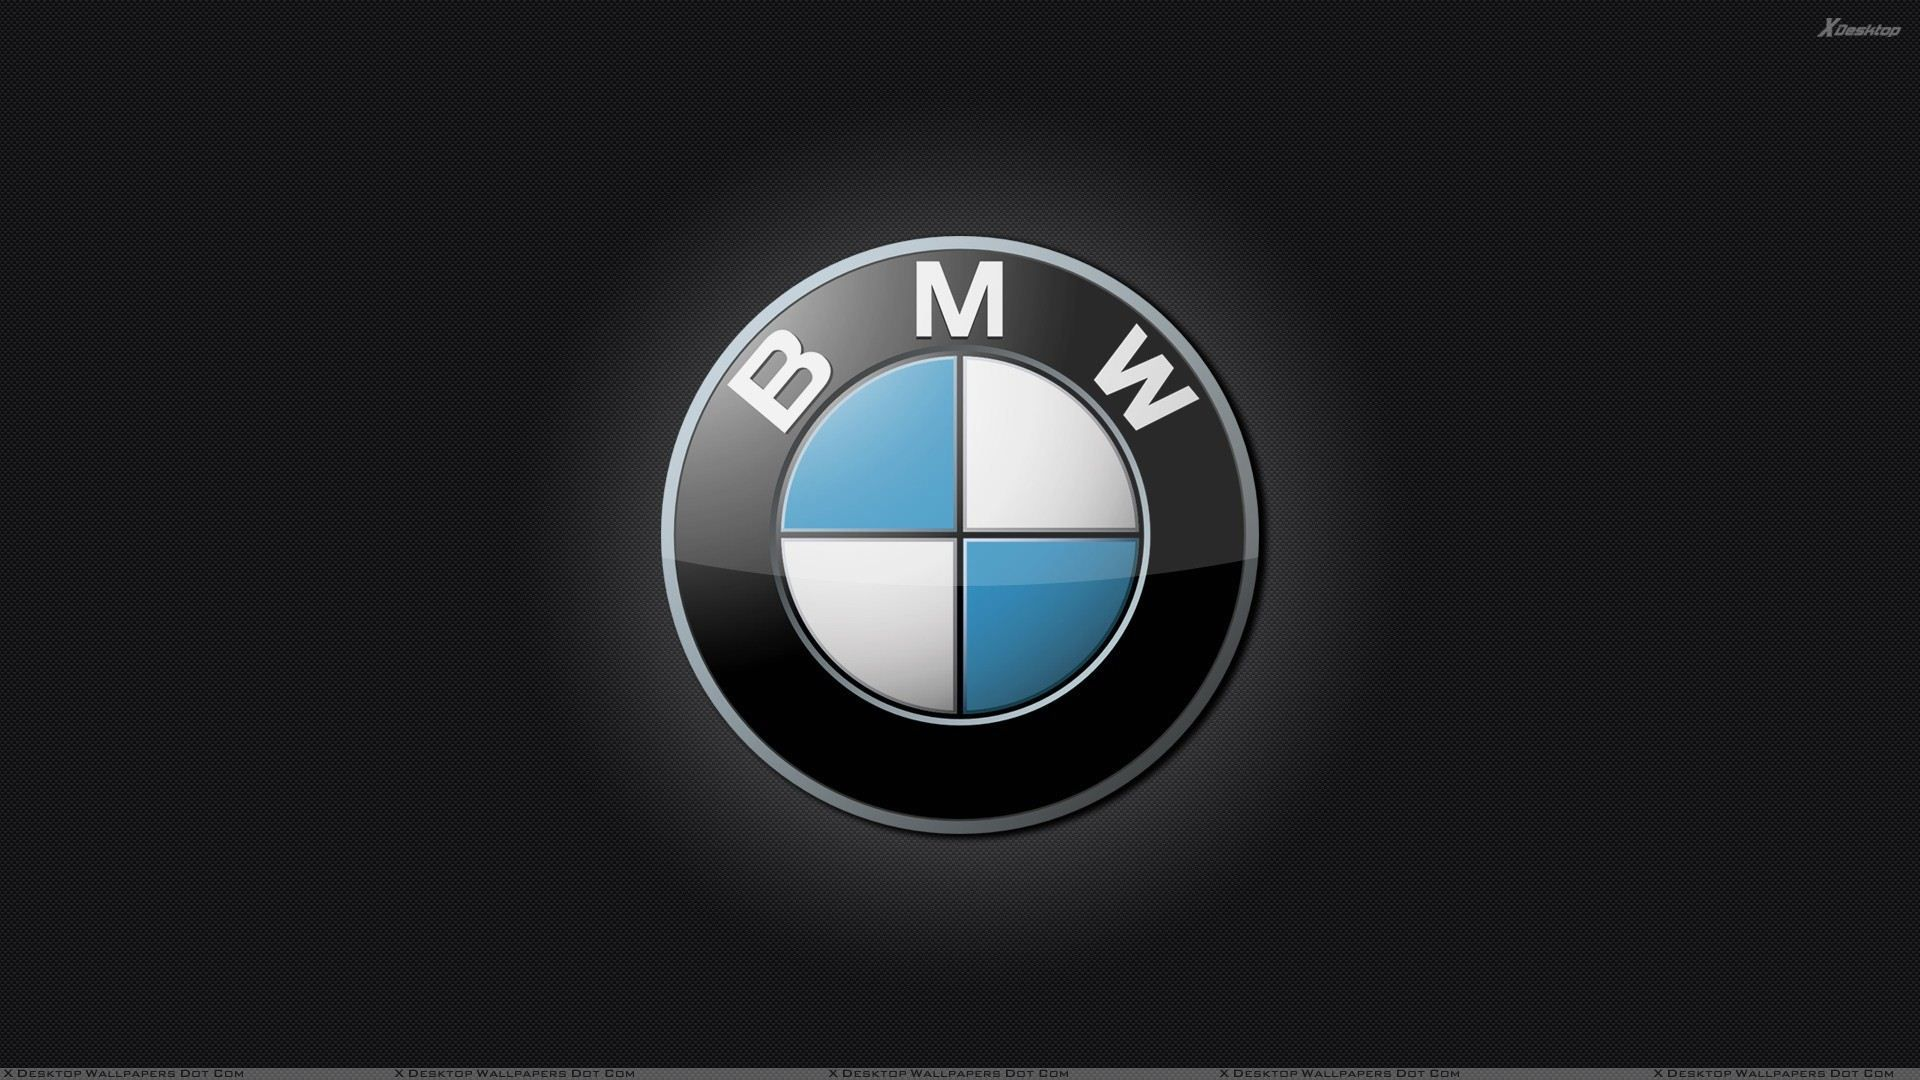 Bmw Wallpaper Hd 2560x1440 Bmw Full Hd 壁纸 And 背景 1920x1080 Id 475302